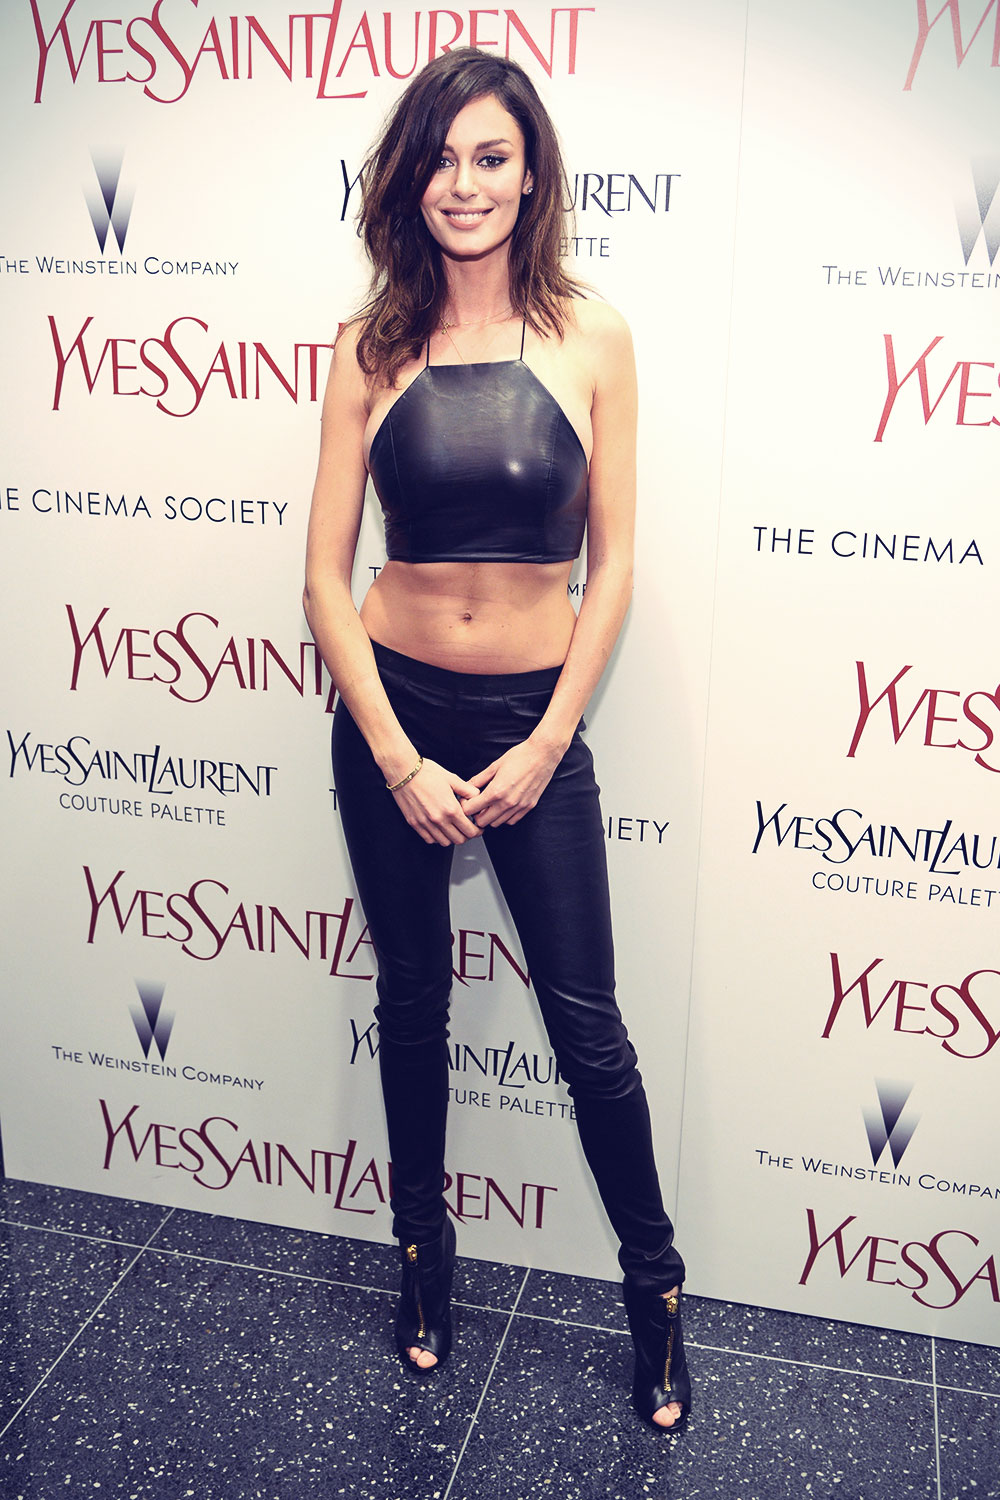 Nicole Trunfio attends The Weinstein Company's Yves Saint Laurent premiere